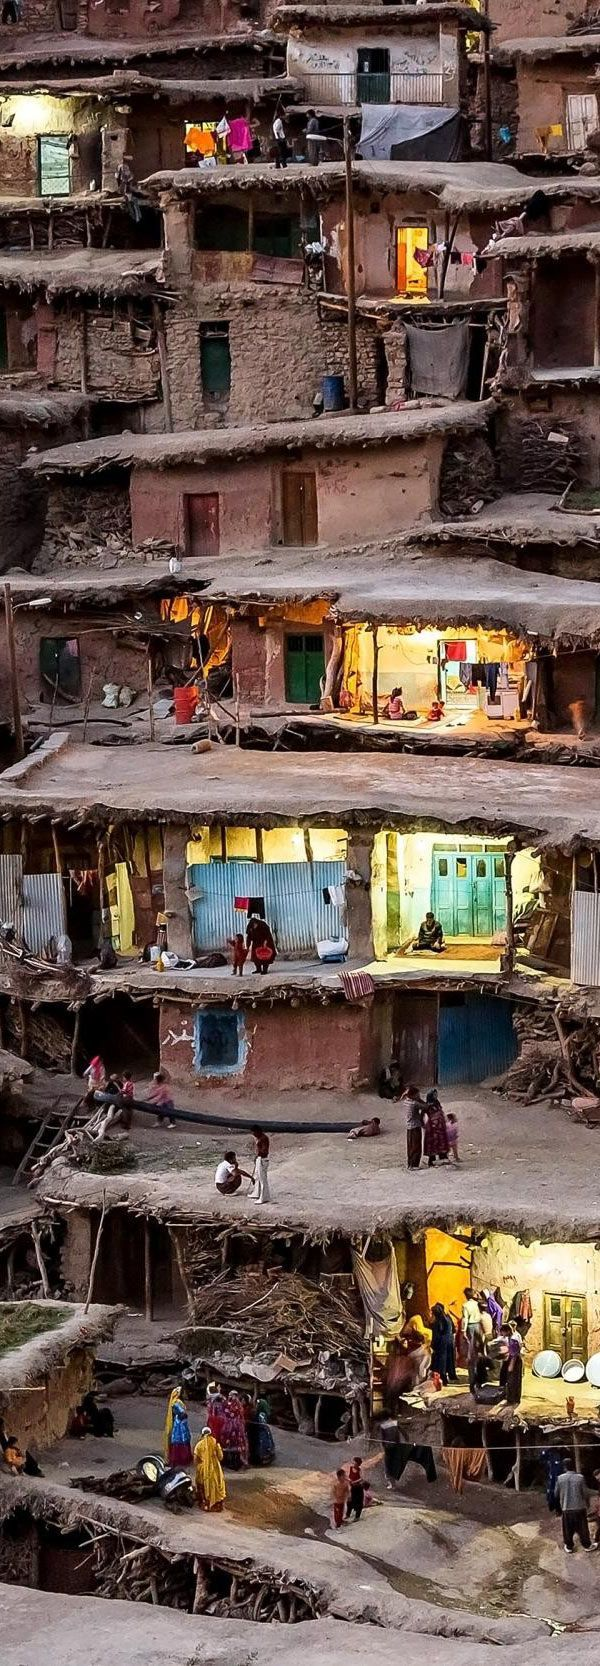 https://plus.google.com/u/0/World Heritage / Traditional Village / Masuleh Iran (where streets are built on the roofs of houses below)